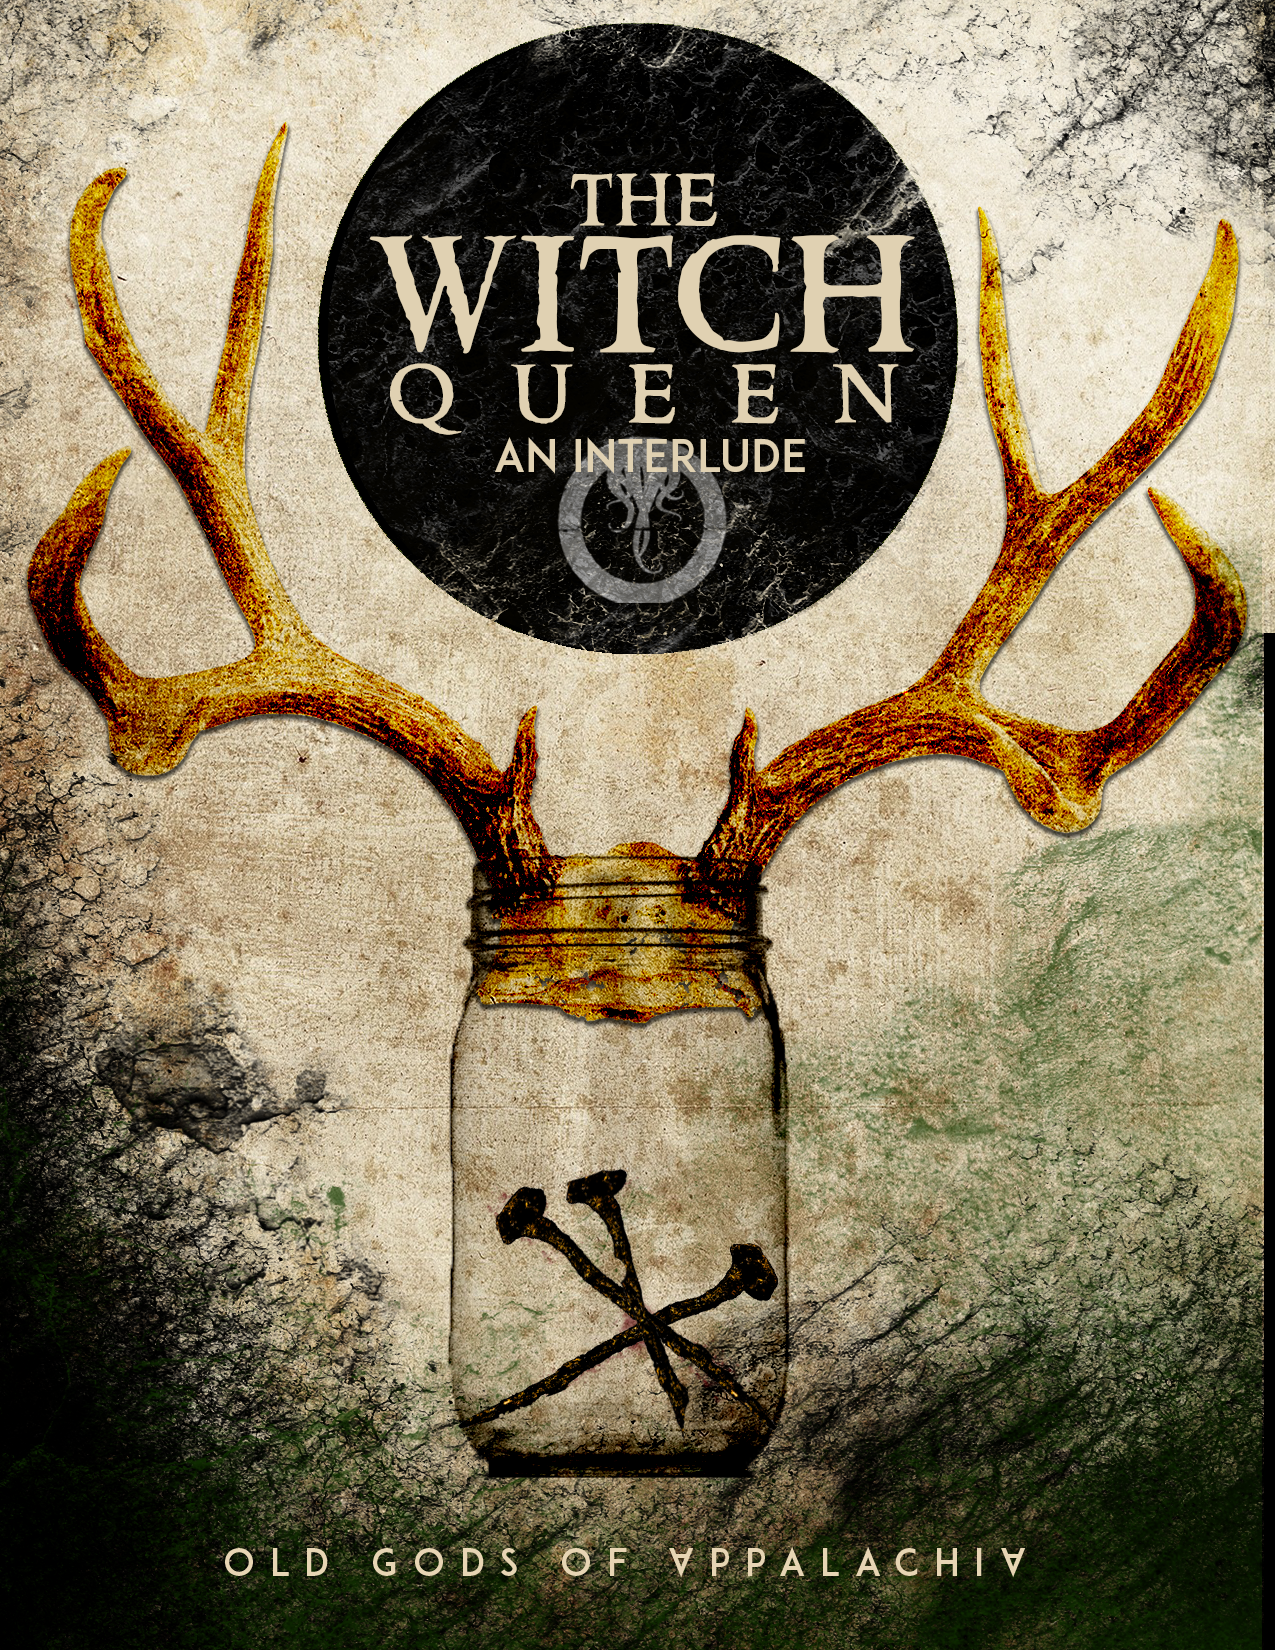 Episode 0.5: The Witch Queen Art